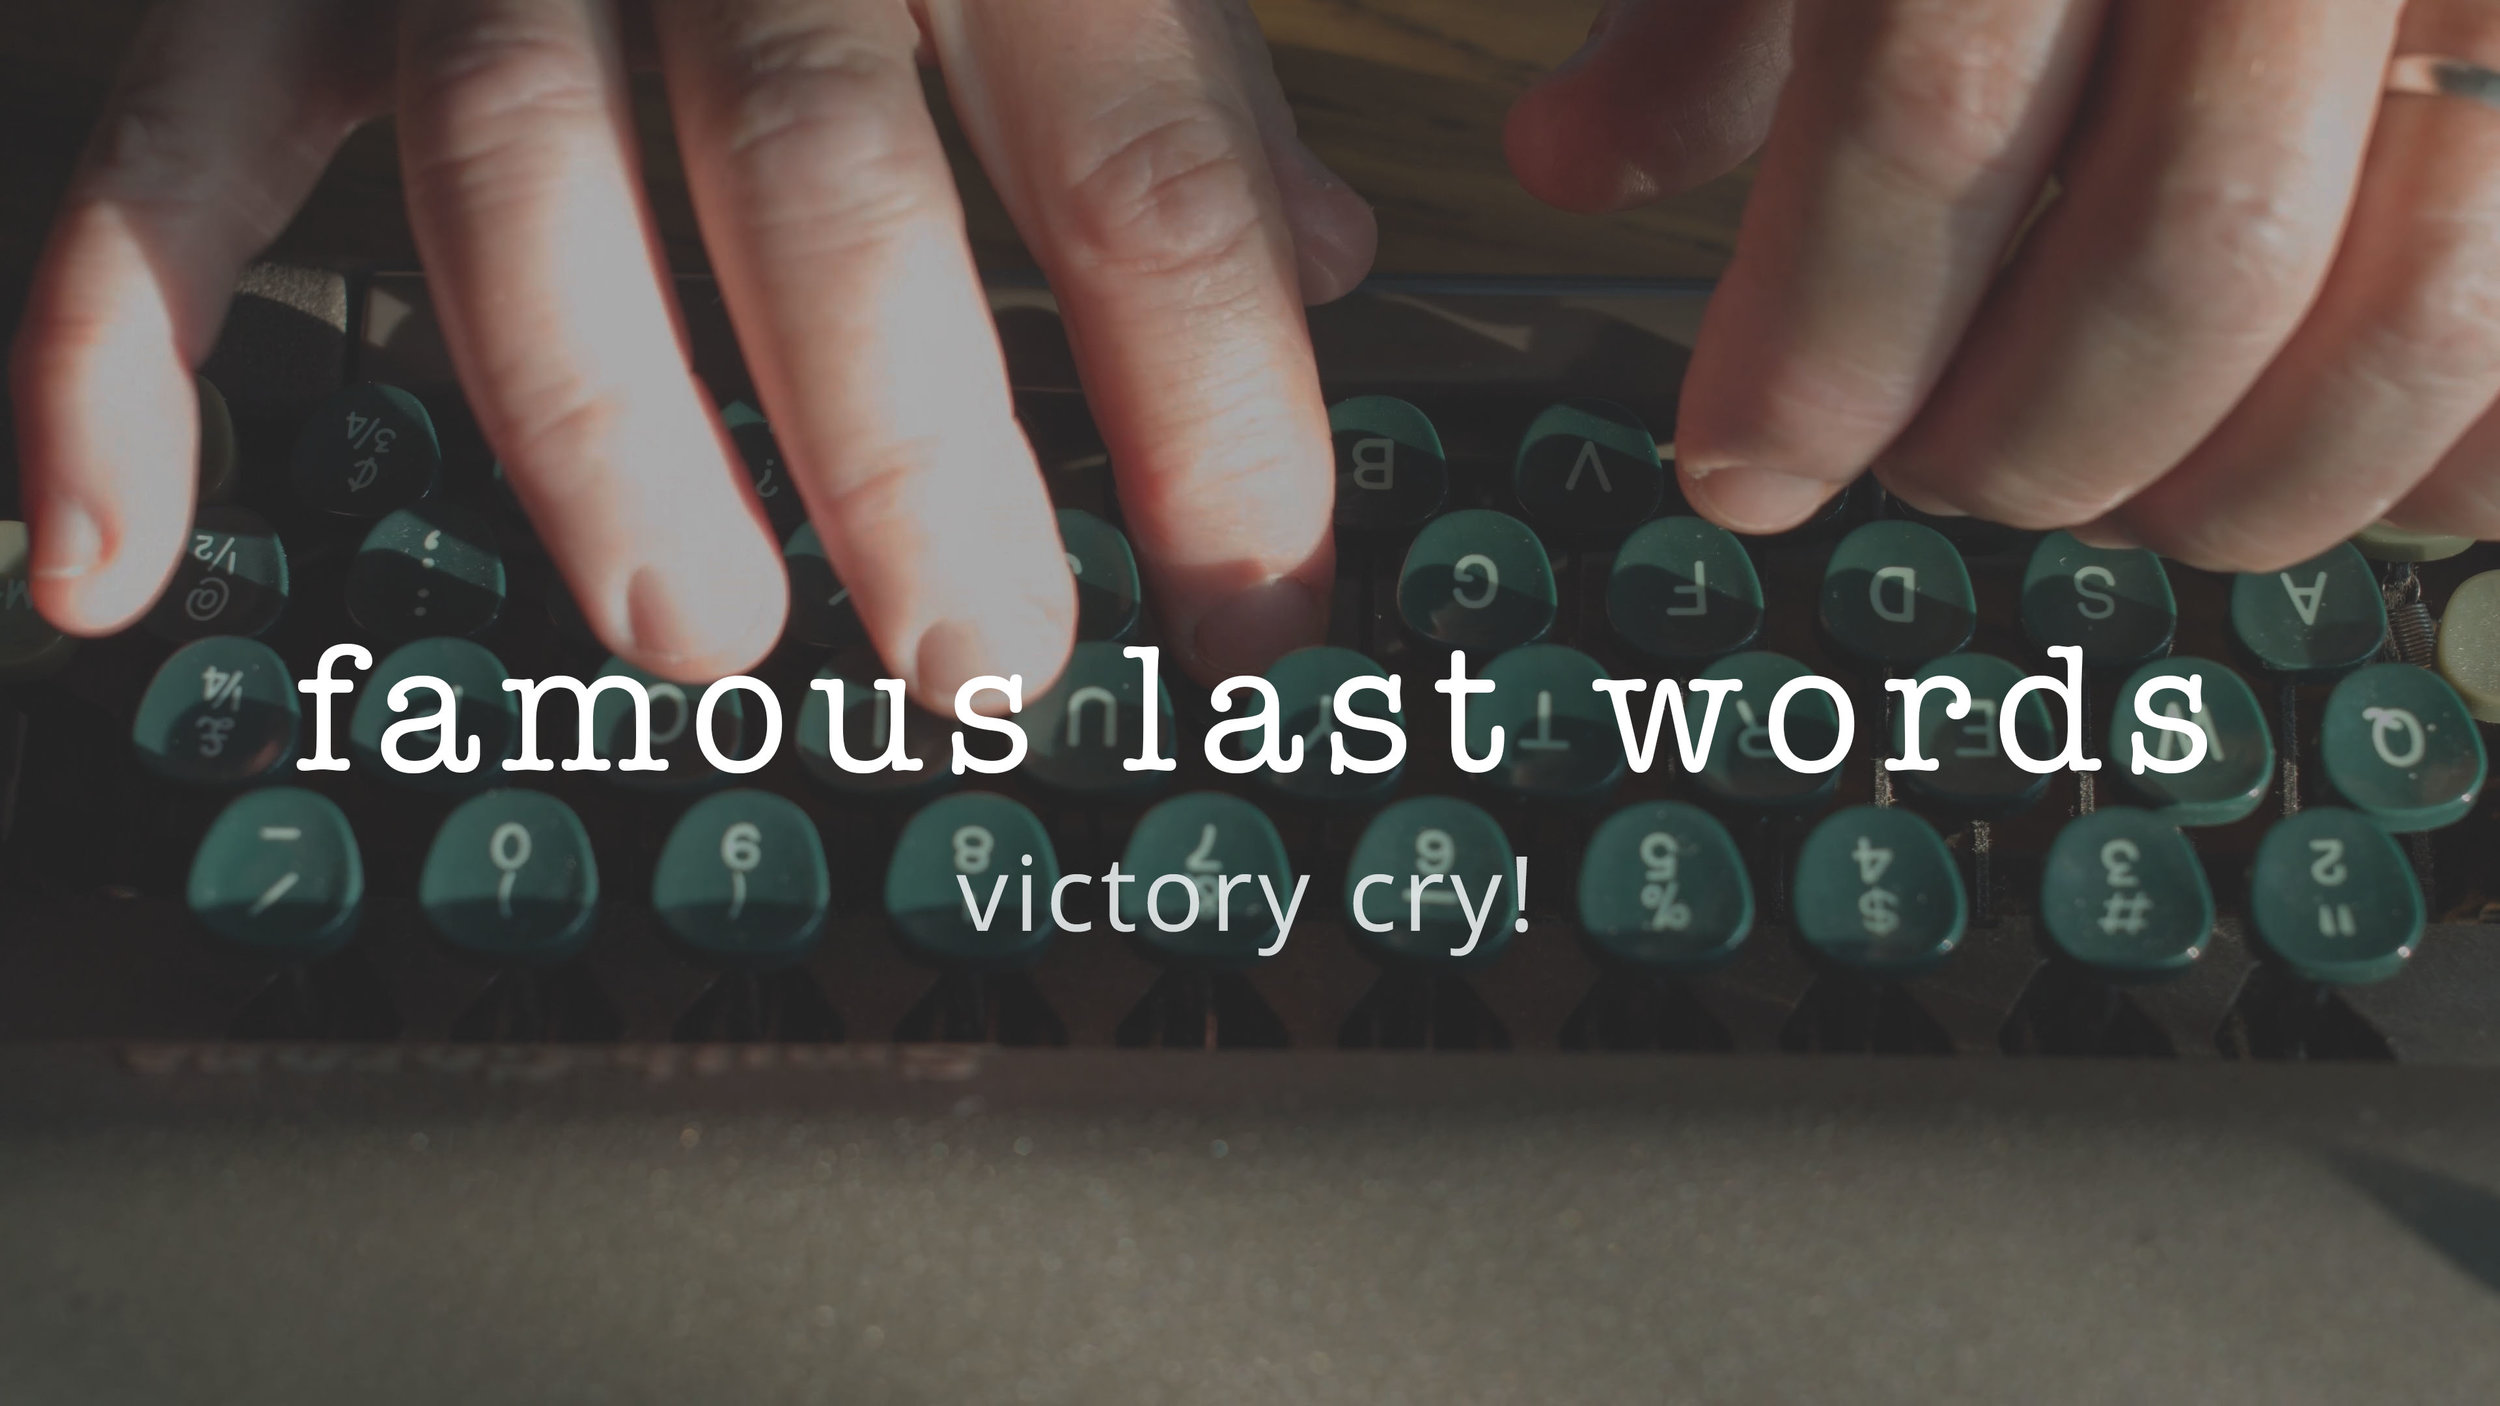 6 | Victory Cry!